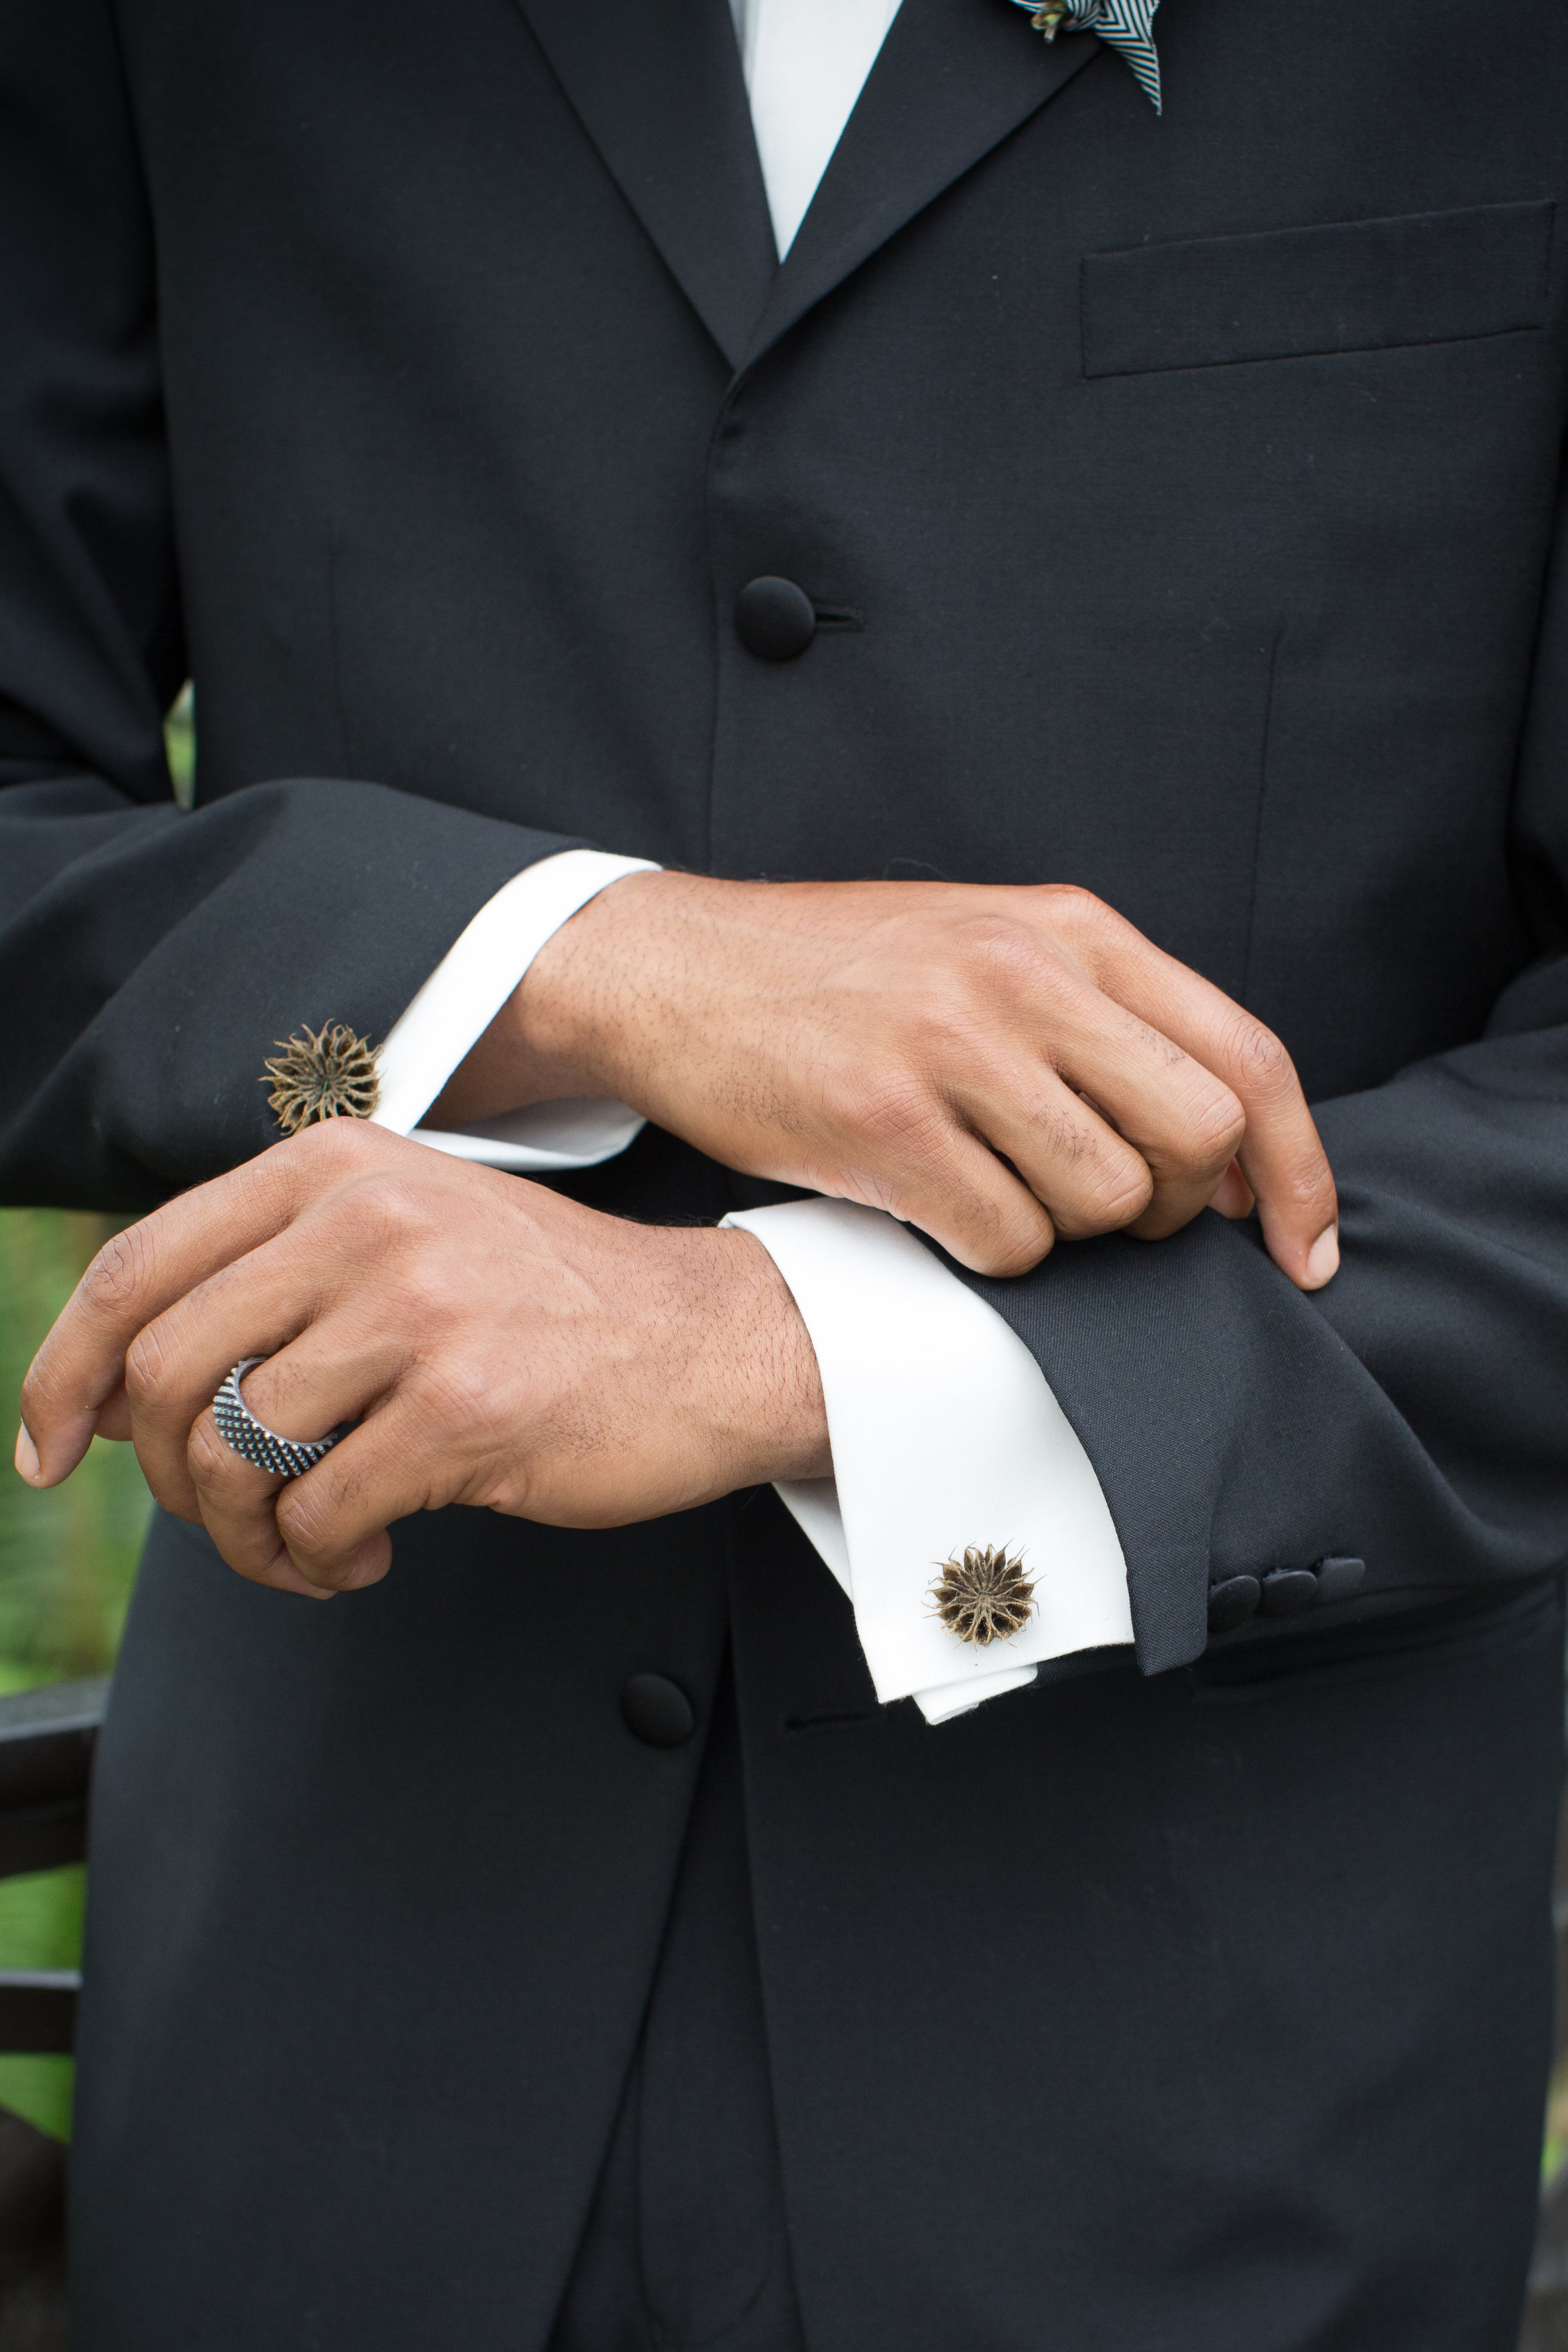 JennaBethPhotography-LGWConservatory-unique-cuff-links.jpg